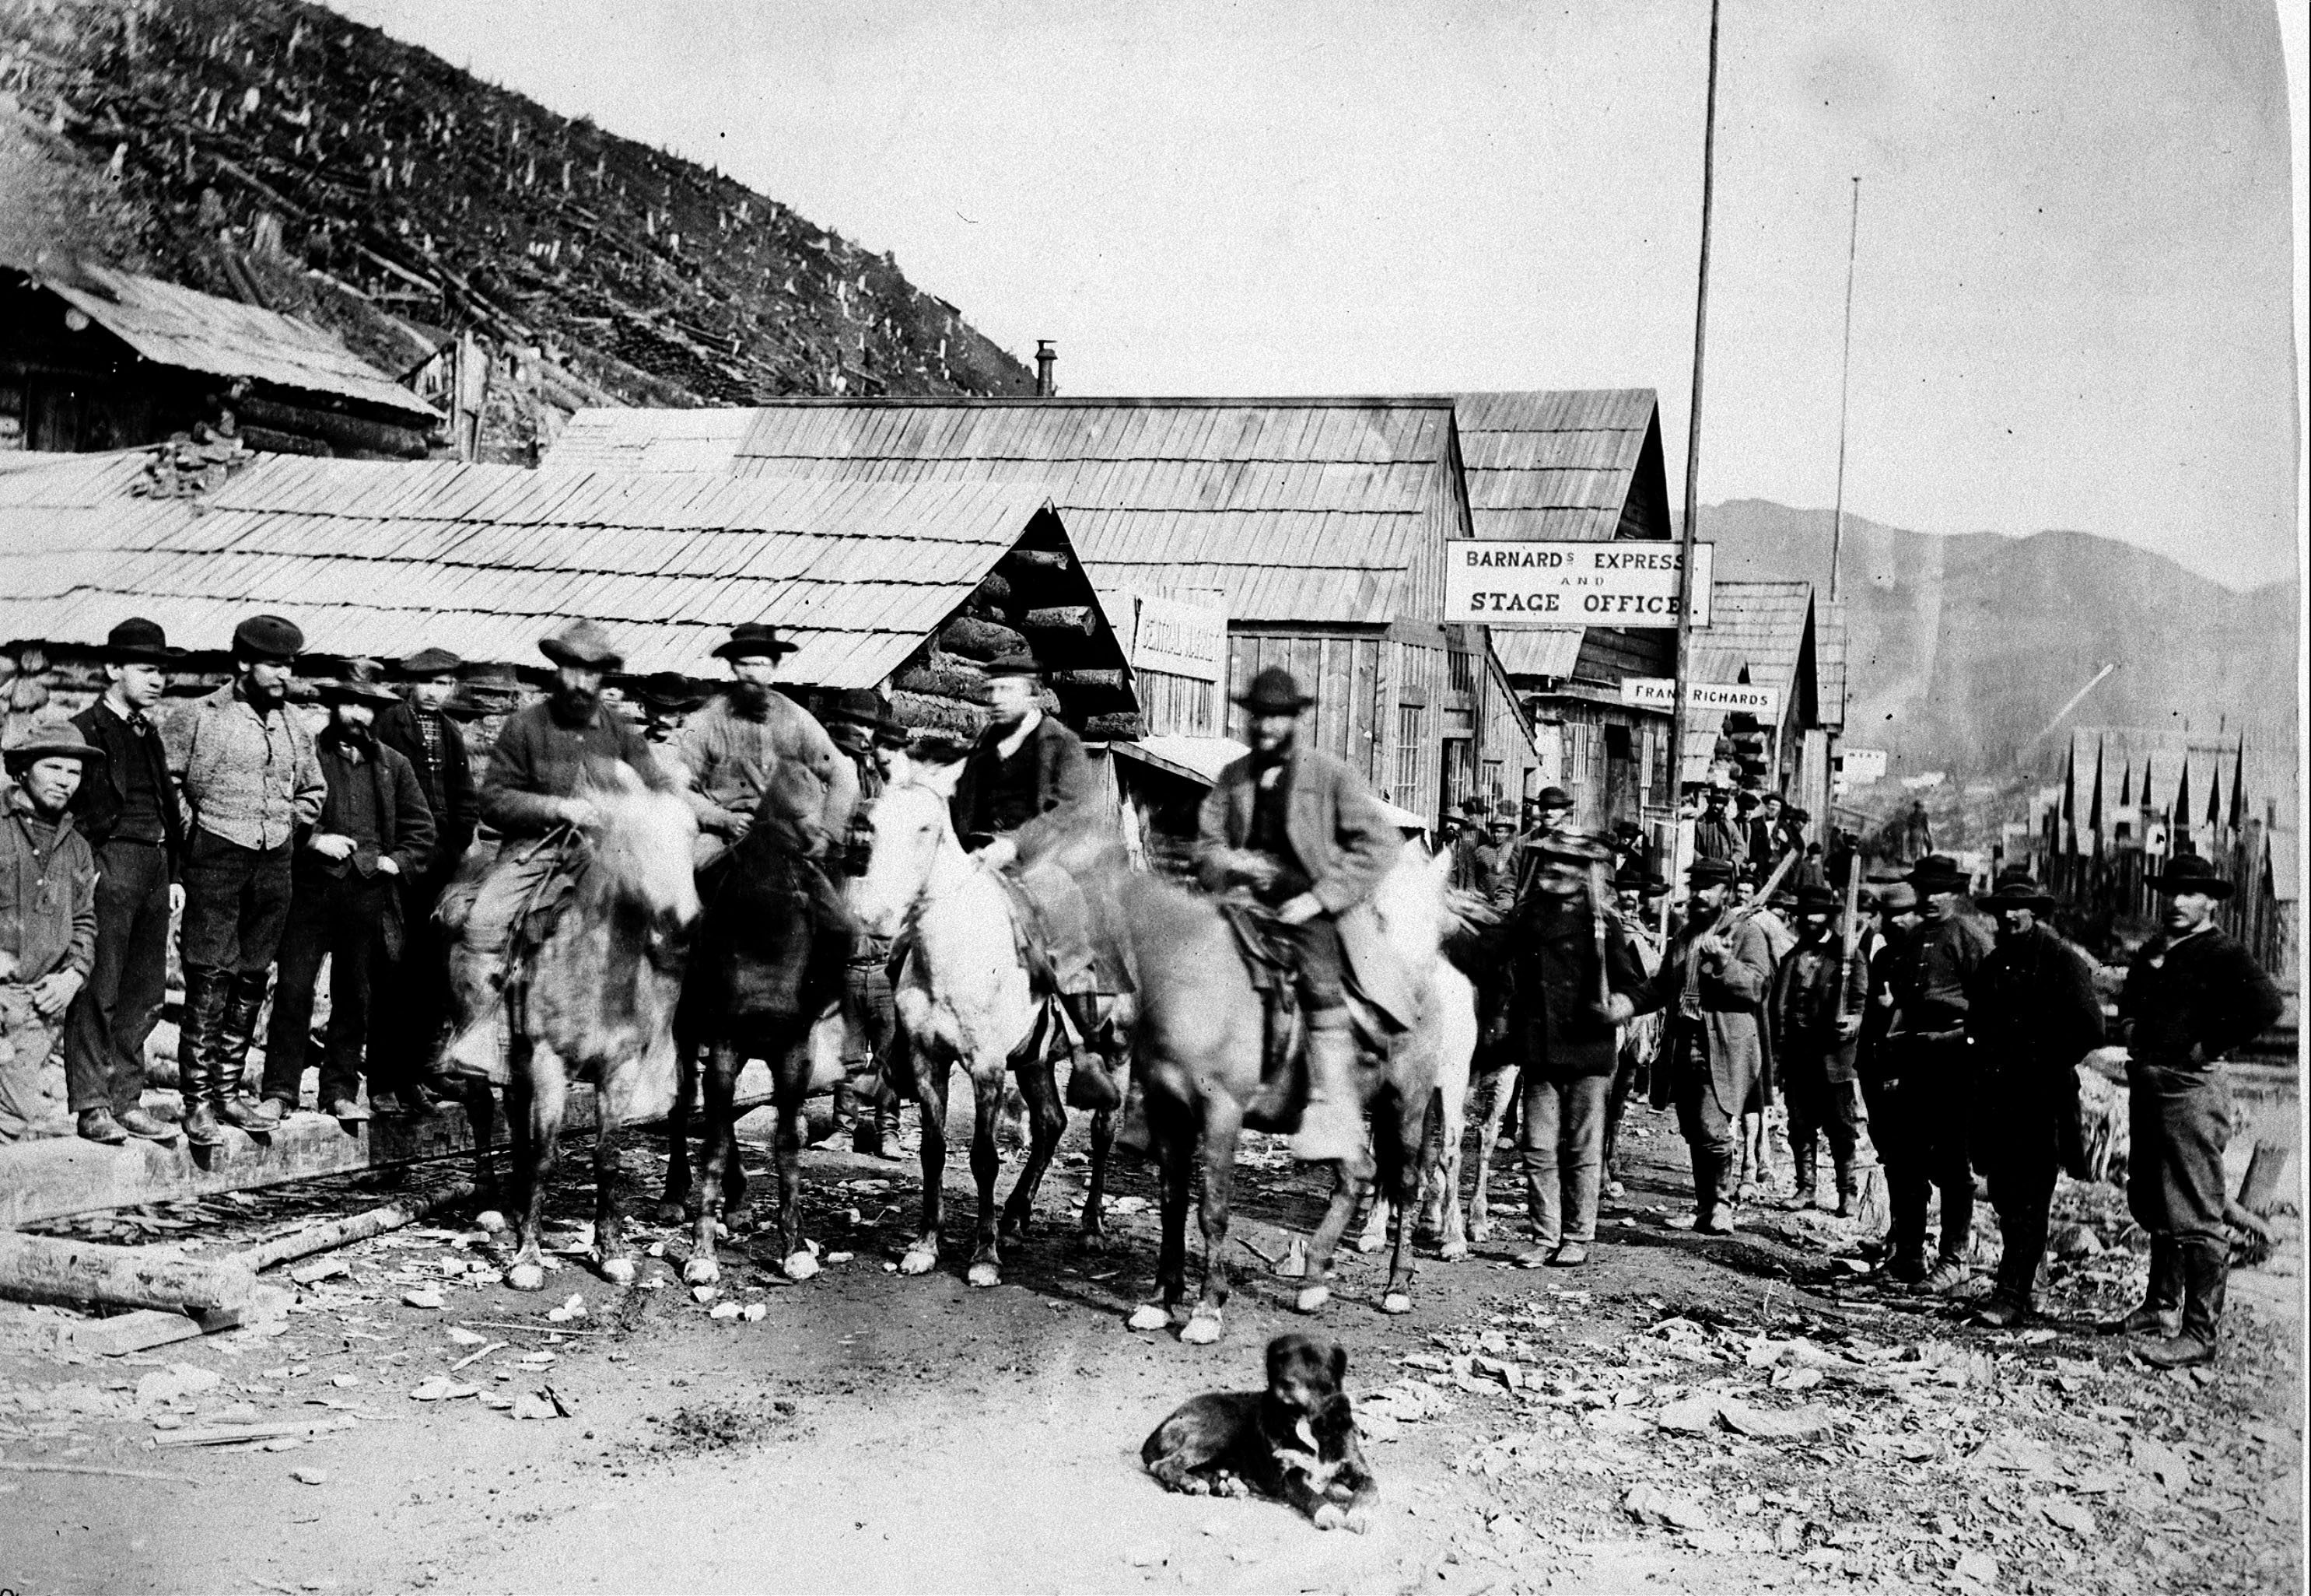 Barkerville British Columbia 1865 Law Enforcement – Security guards. Group of men assembled on Main Street of Barkerville. They are leaving for Cariboo Gold Escort (CP PHOTO) 1999 (Charles Gentile National Archives of Canada)